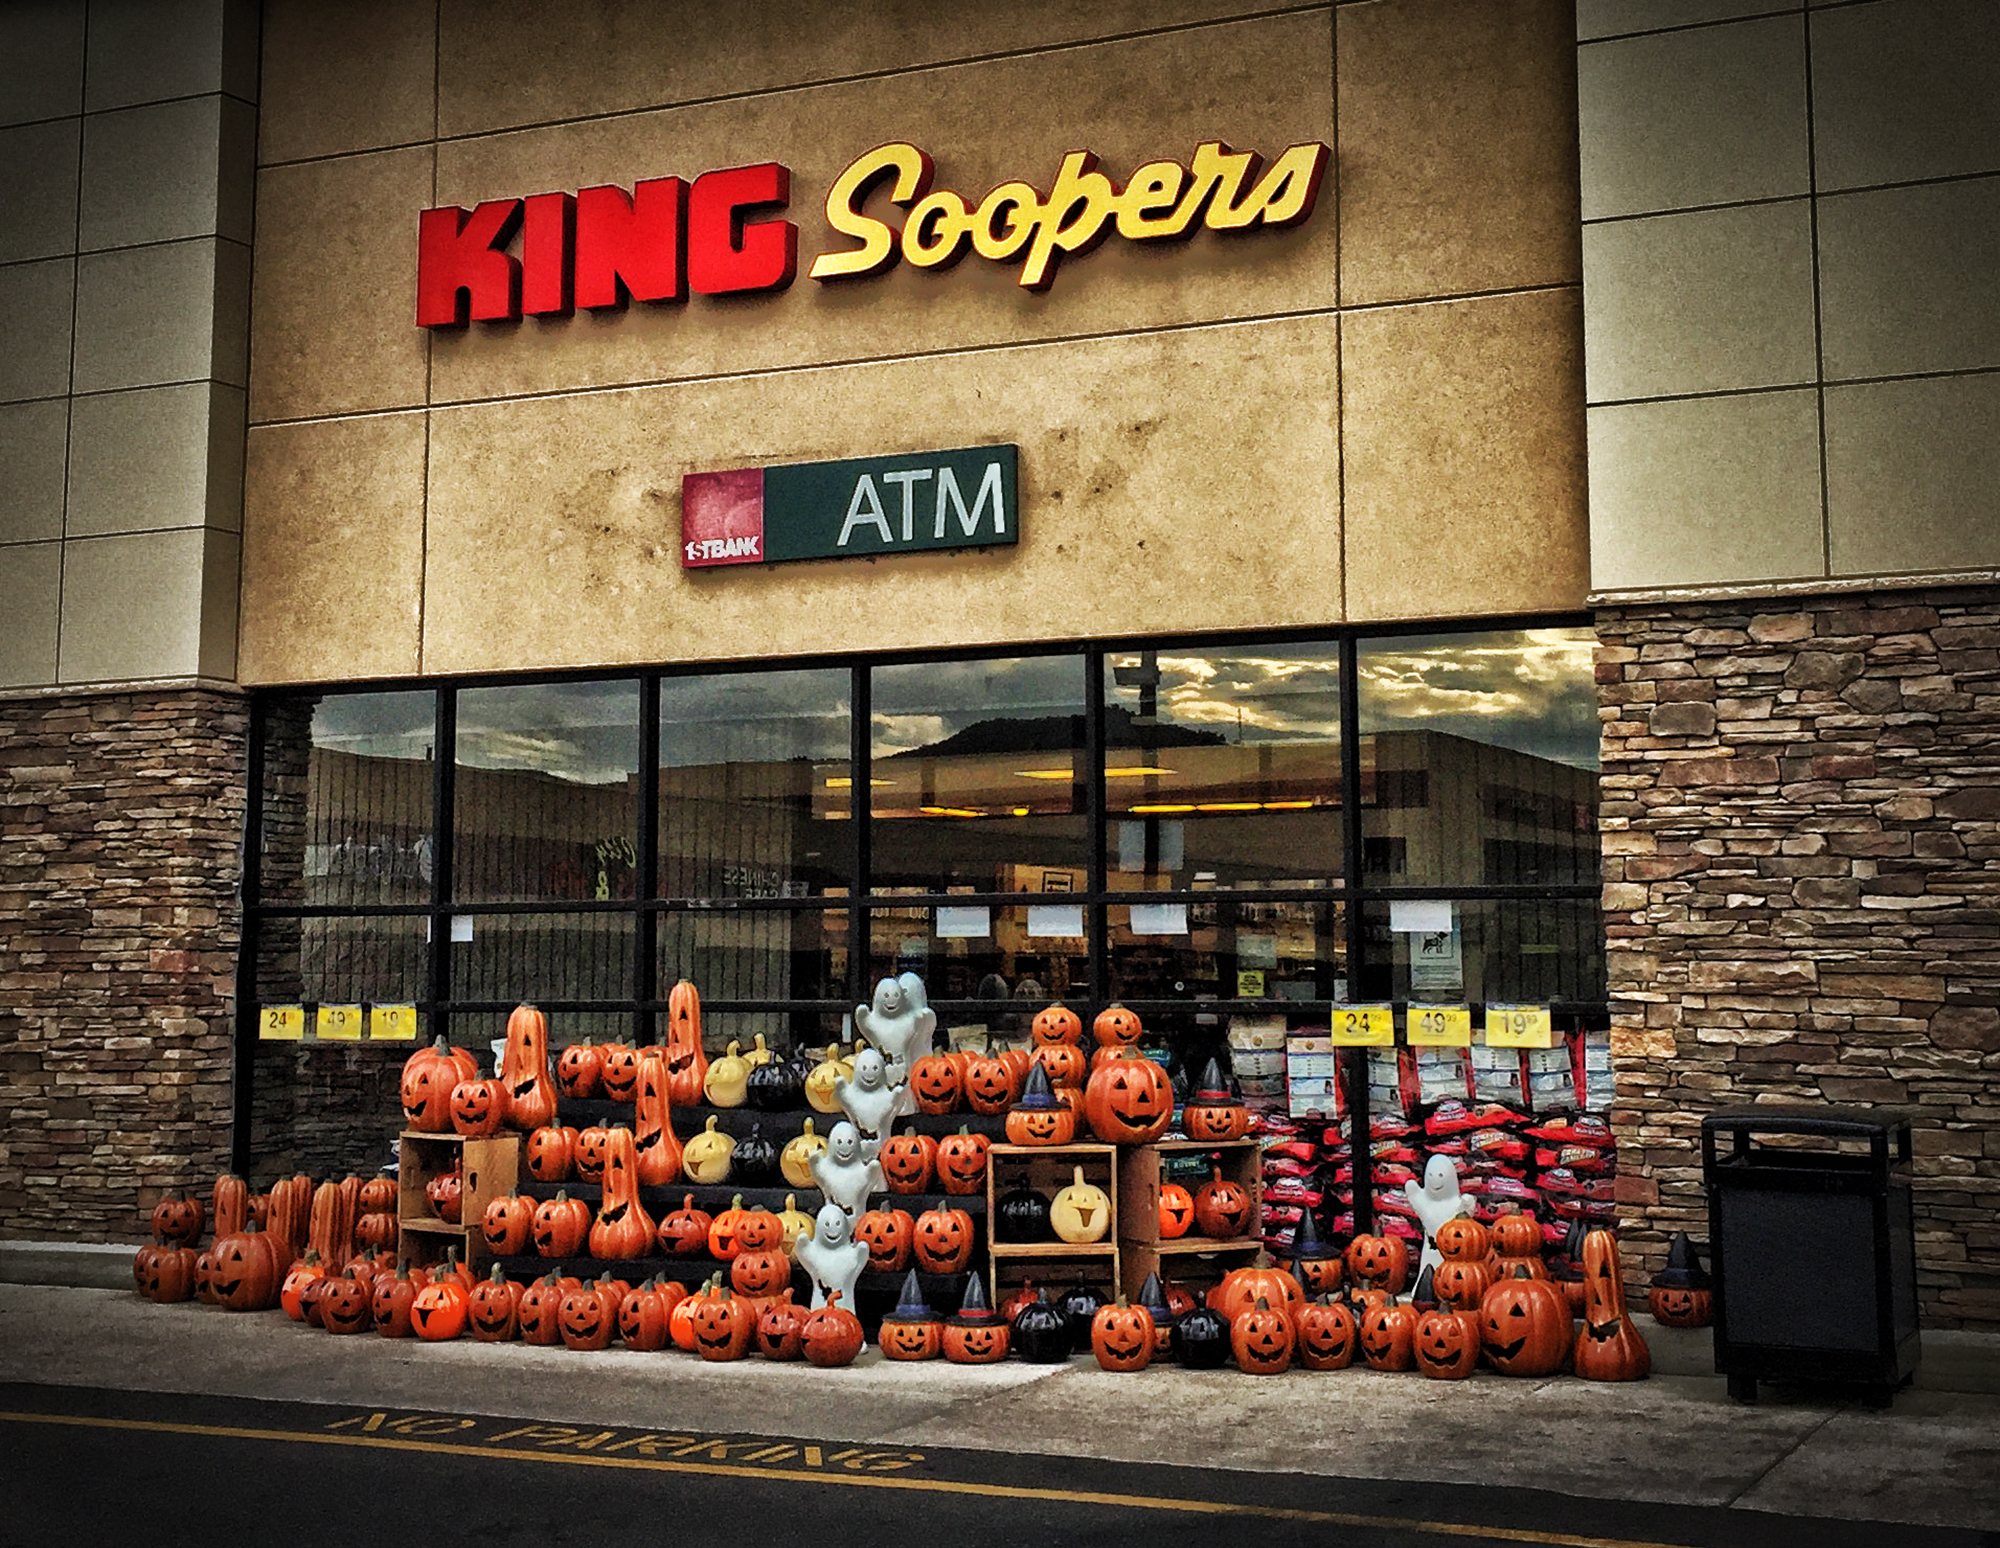 Porcelain Pumpkins at King Soopers. Boulder, Colorado, 2017